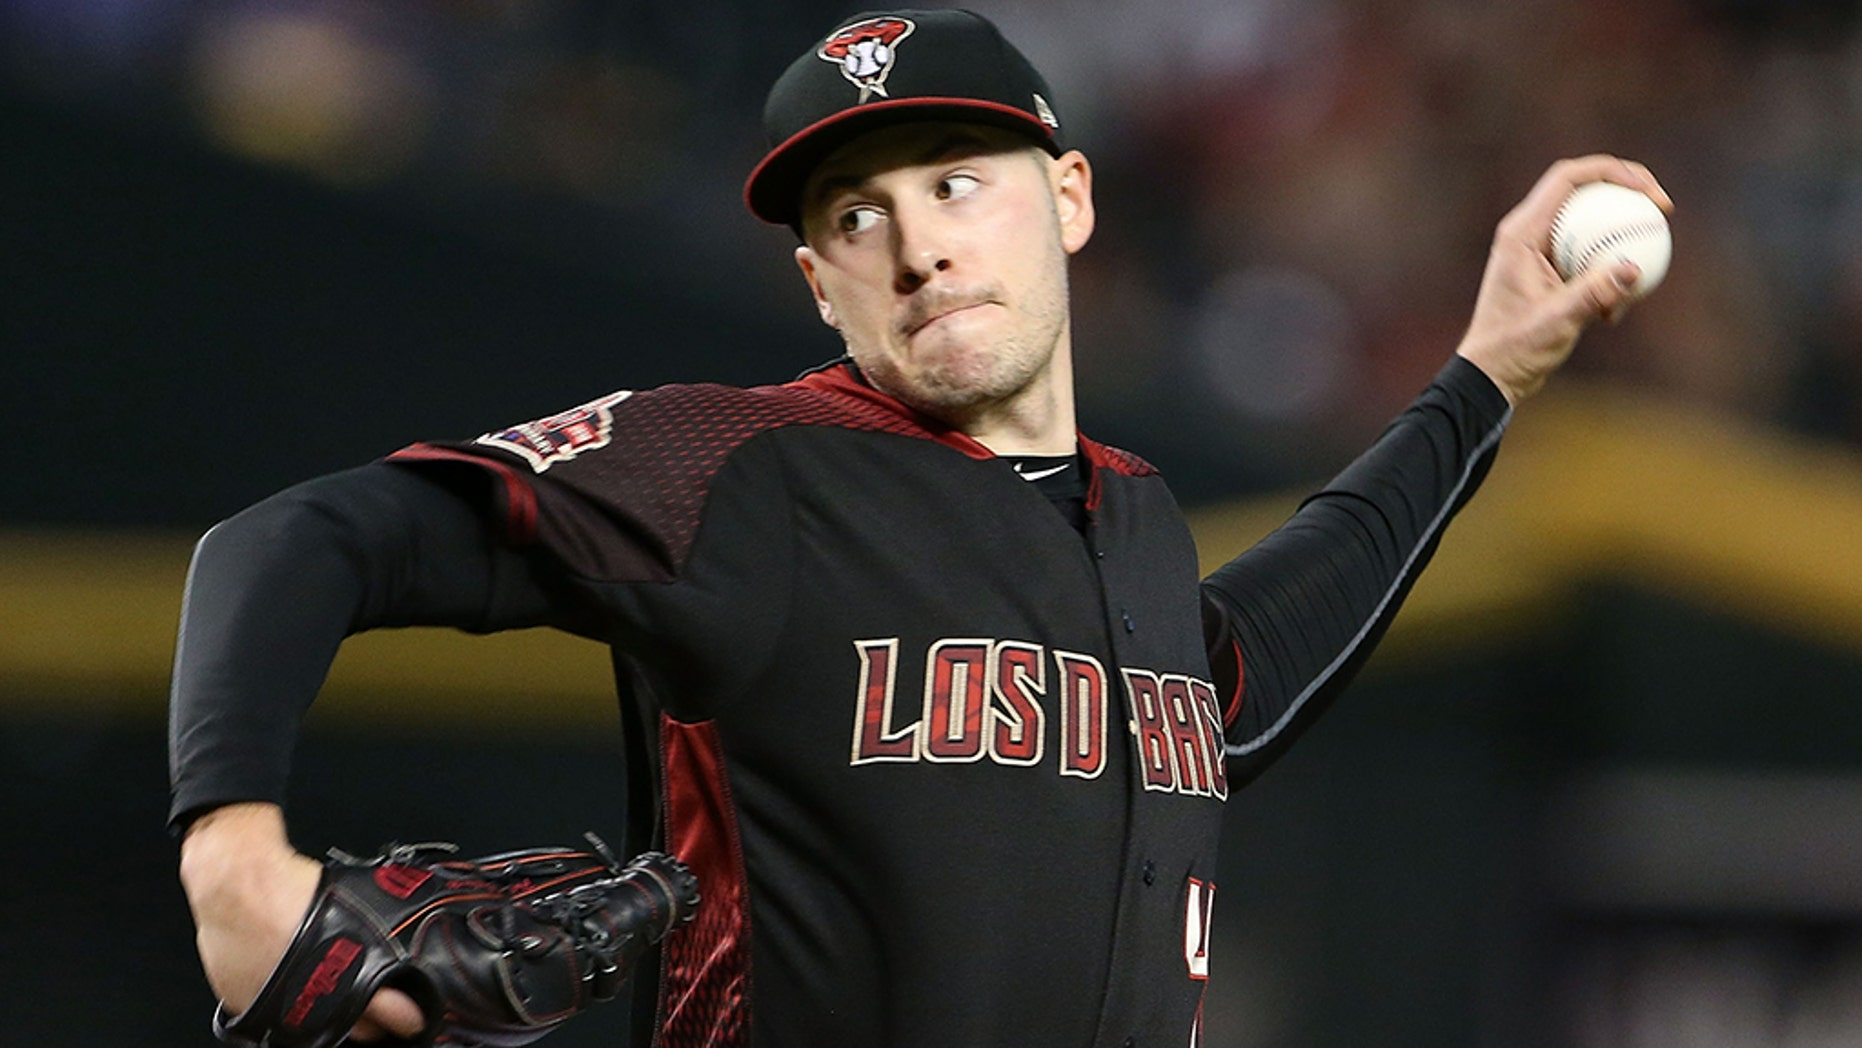 Patrick Corbin to visit with the Yankees on Thursday